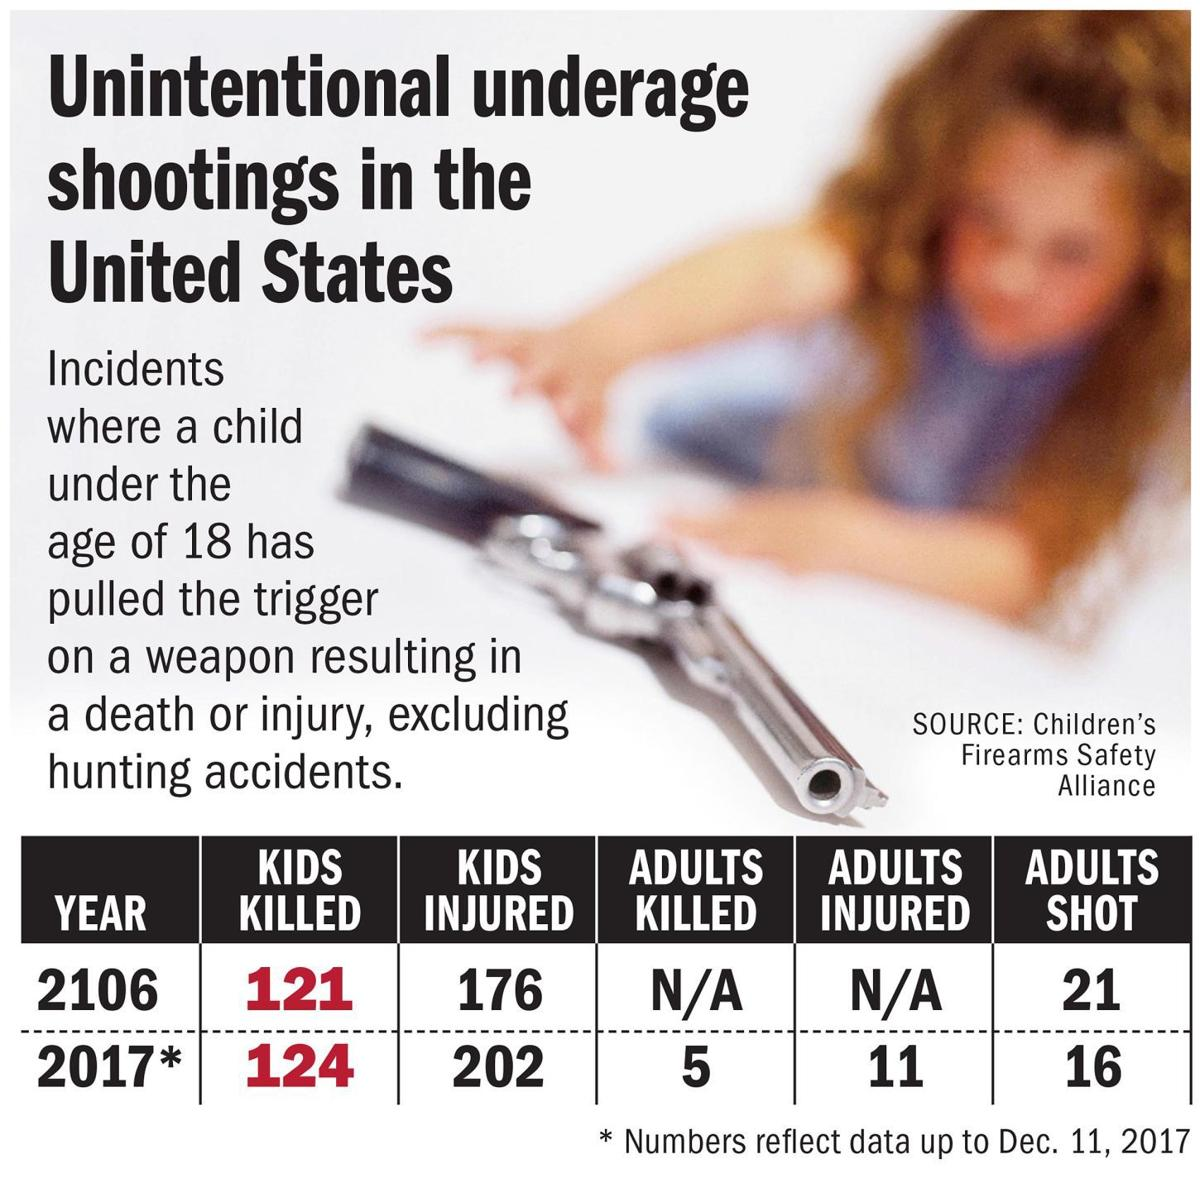 Underage shootings in the United States